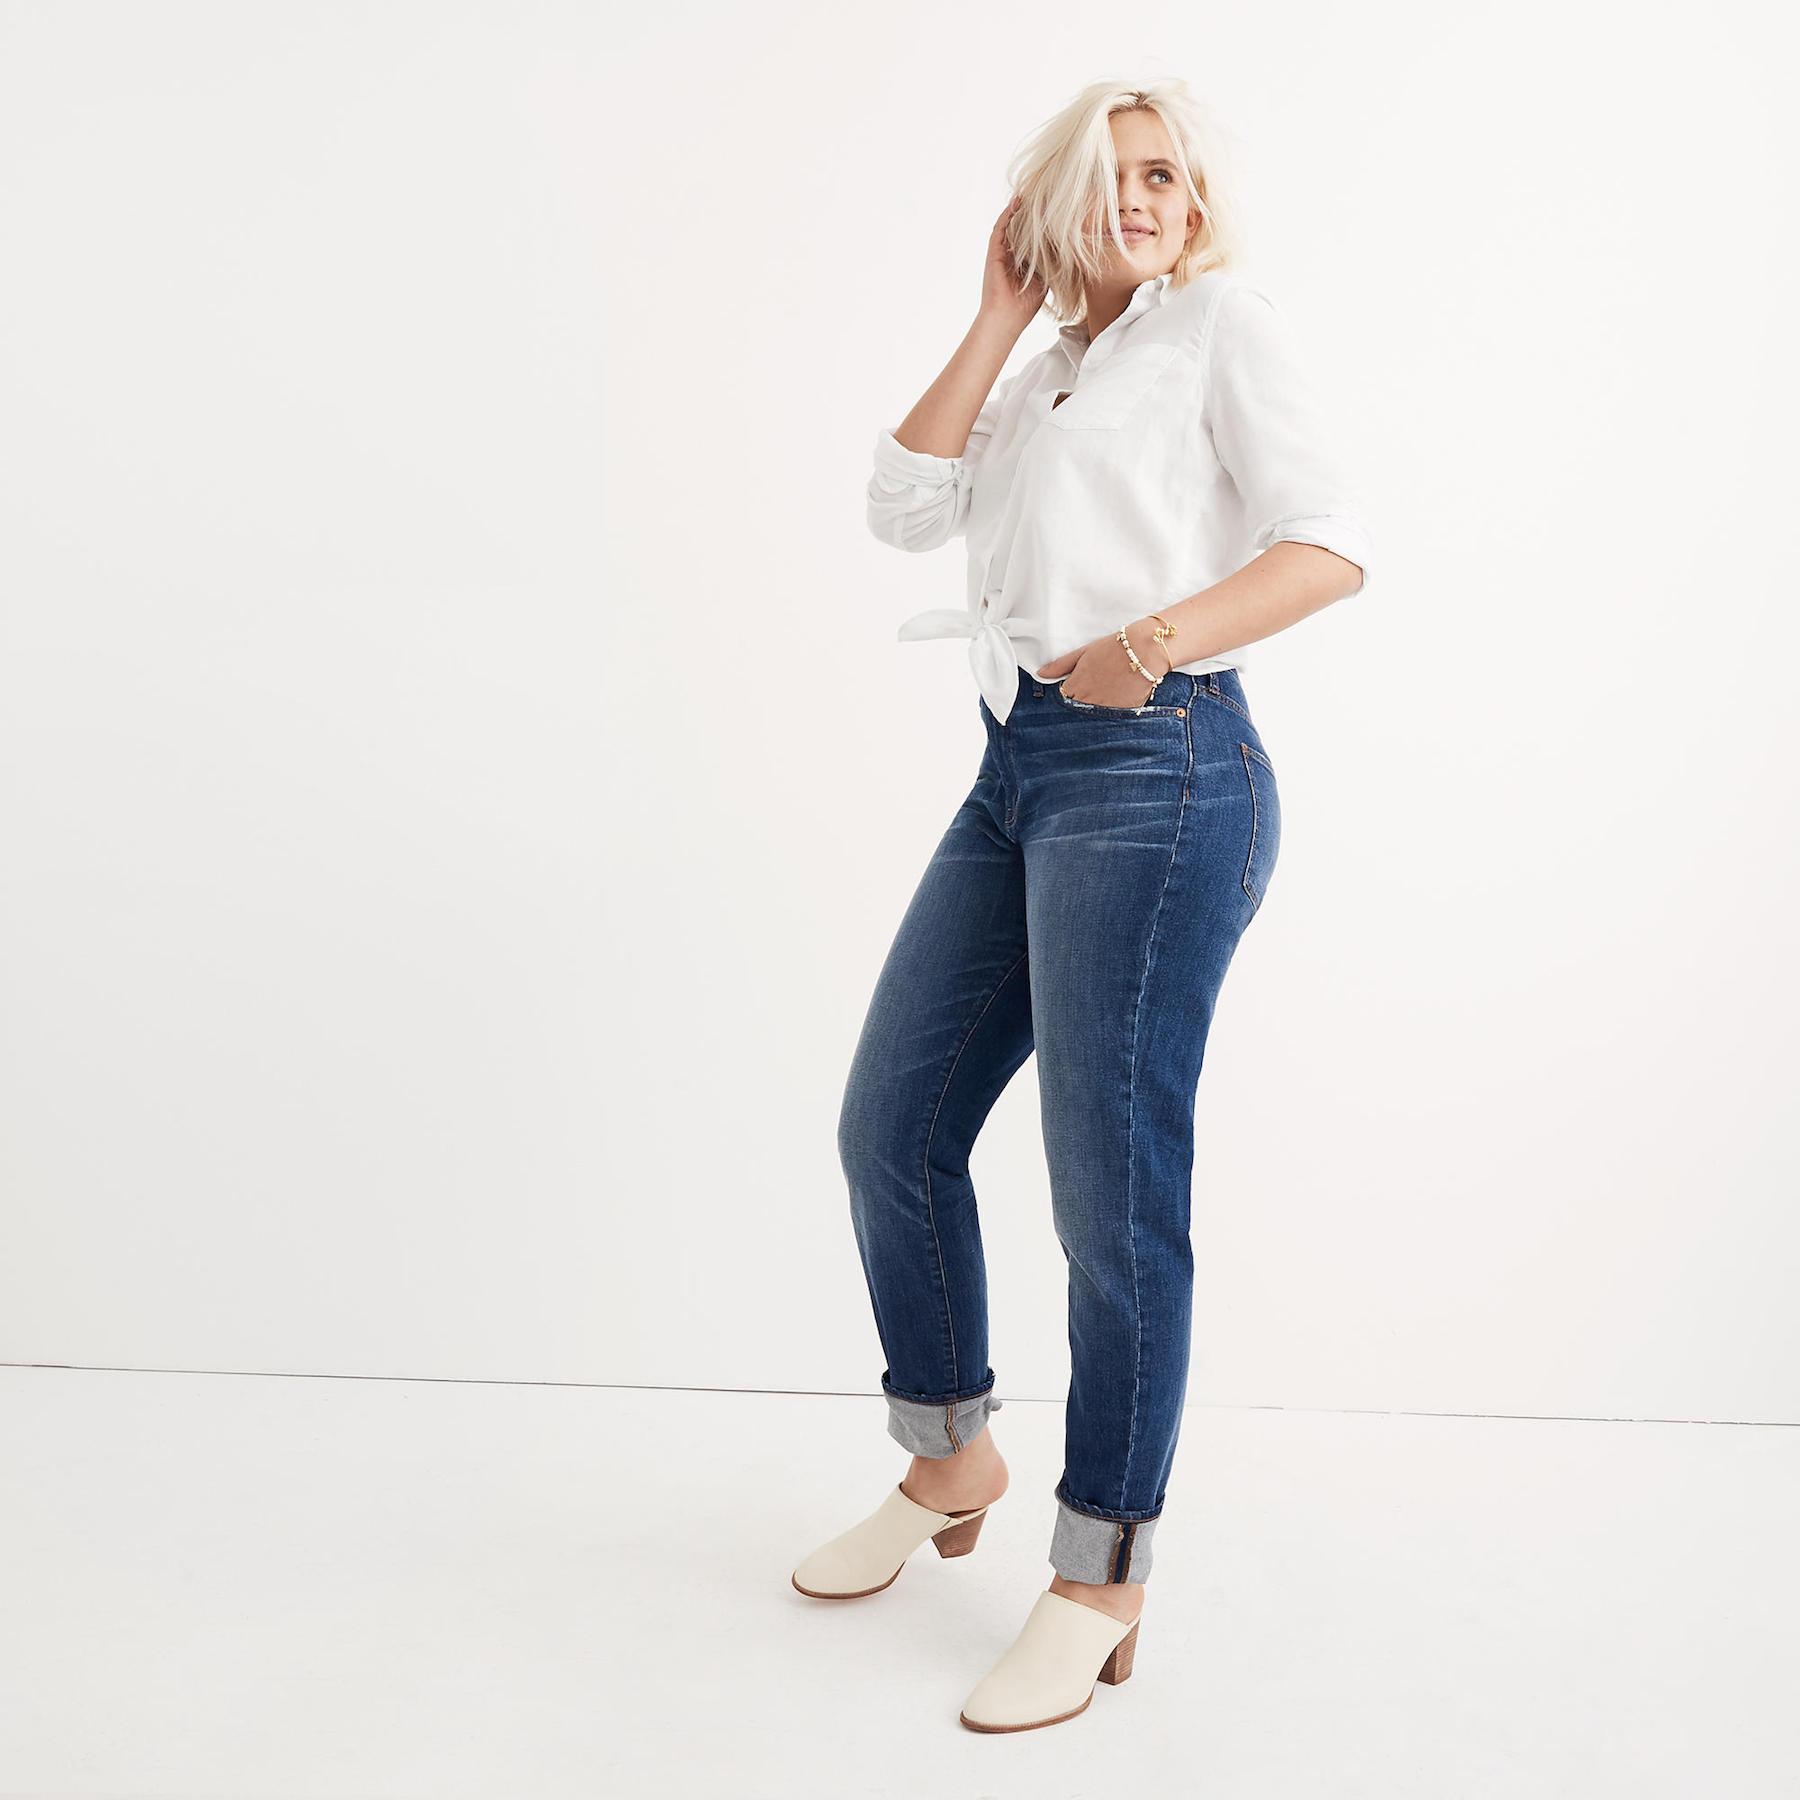 Madewell curvy jeans on model